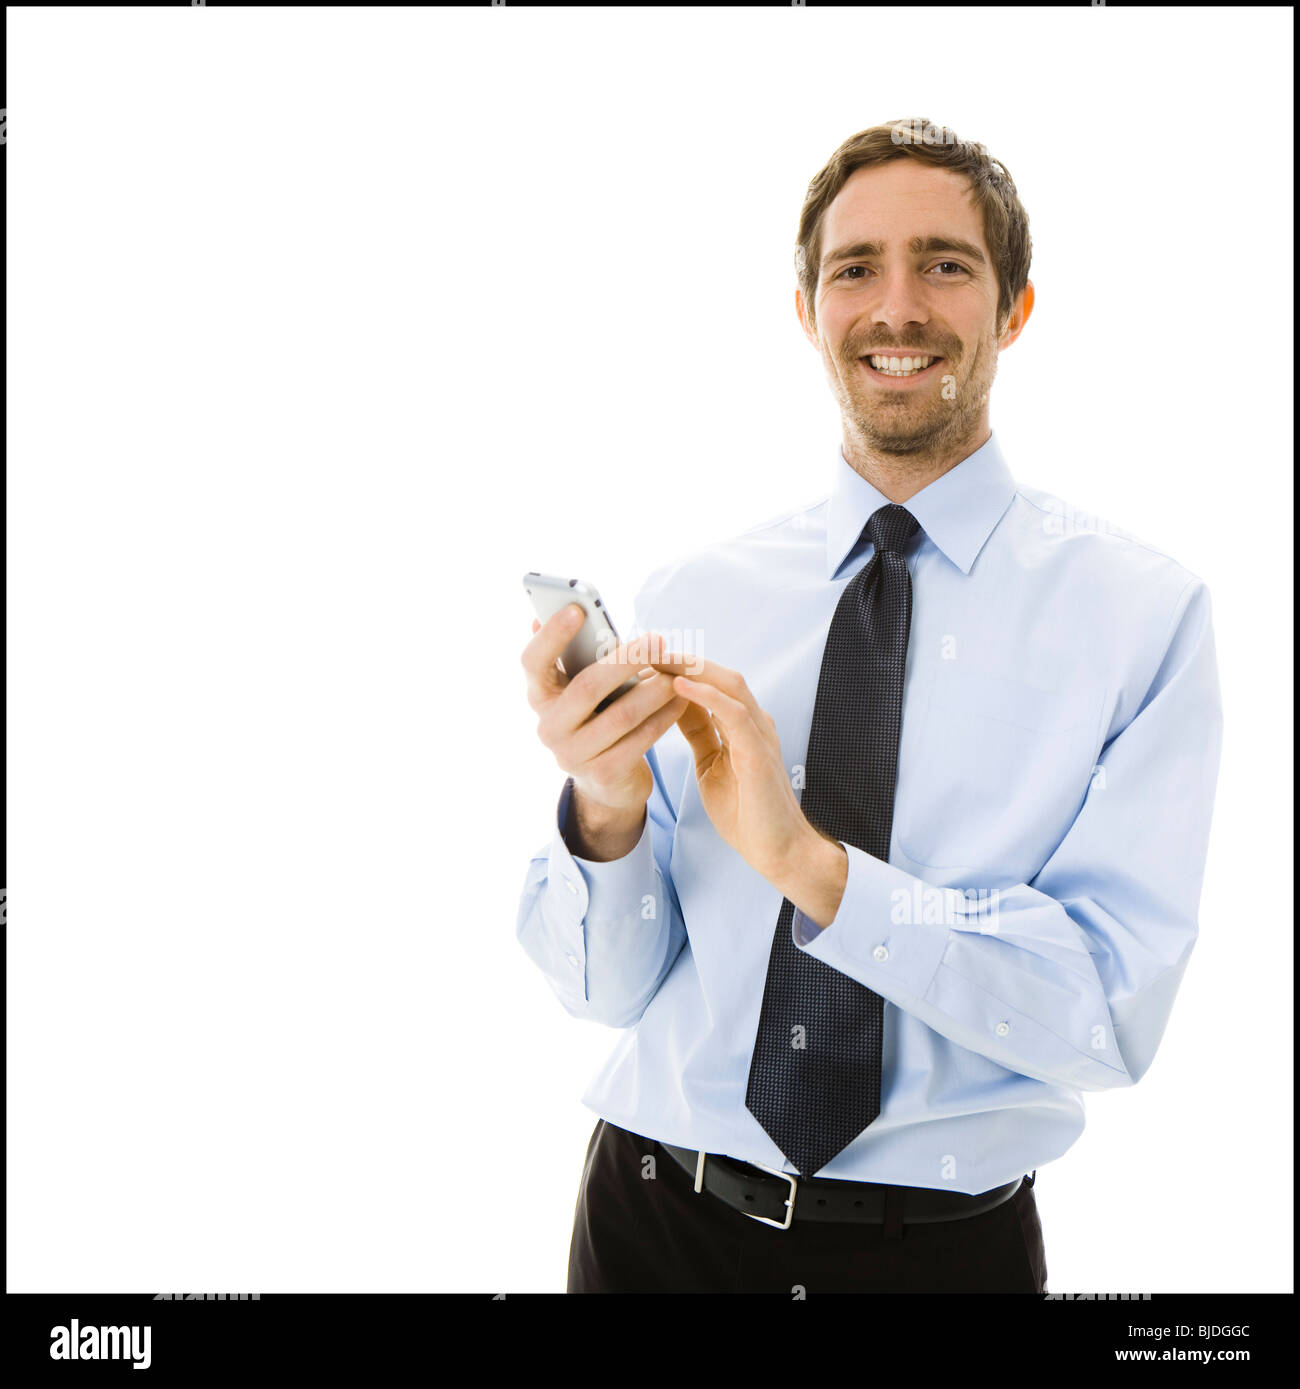 man on his iPhone - Stock Image